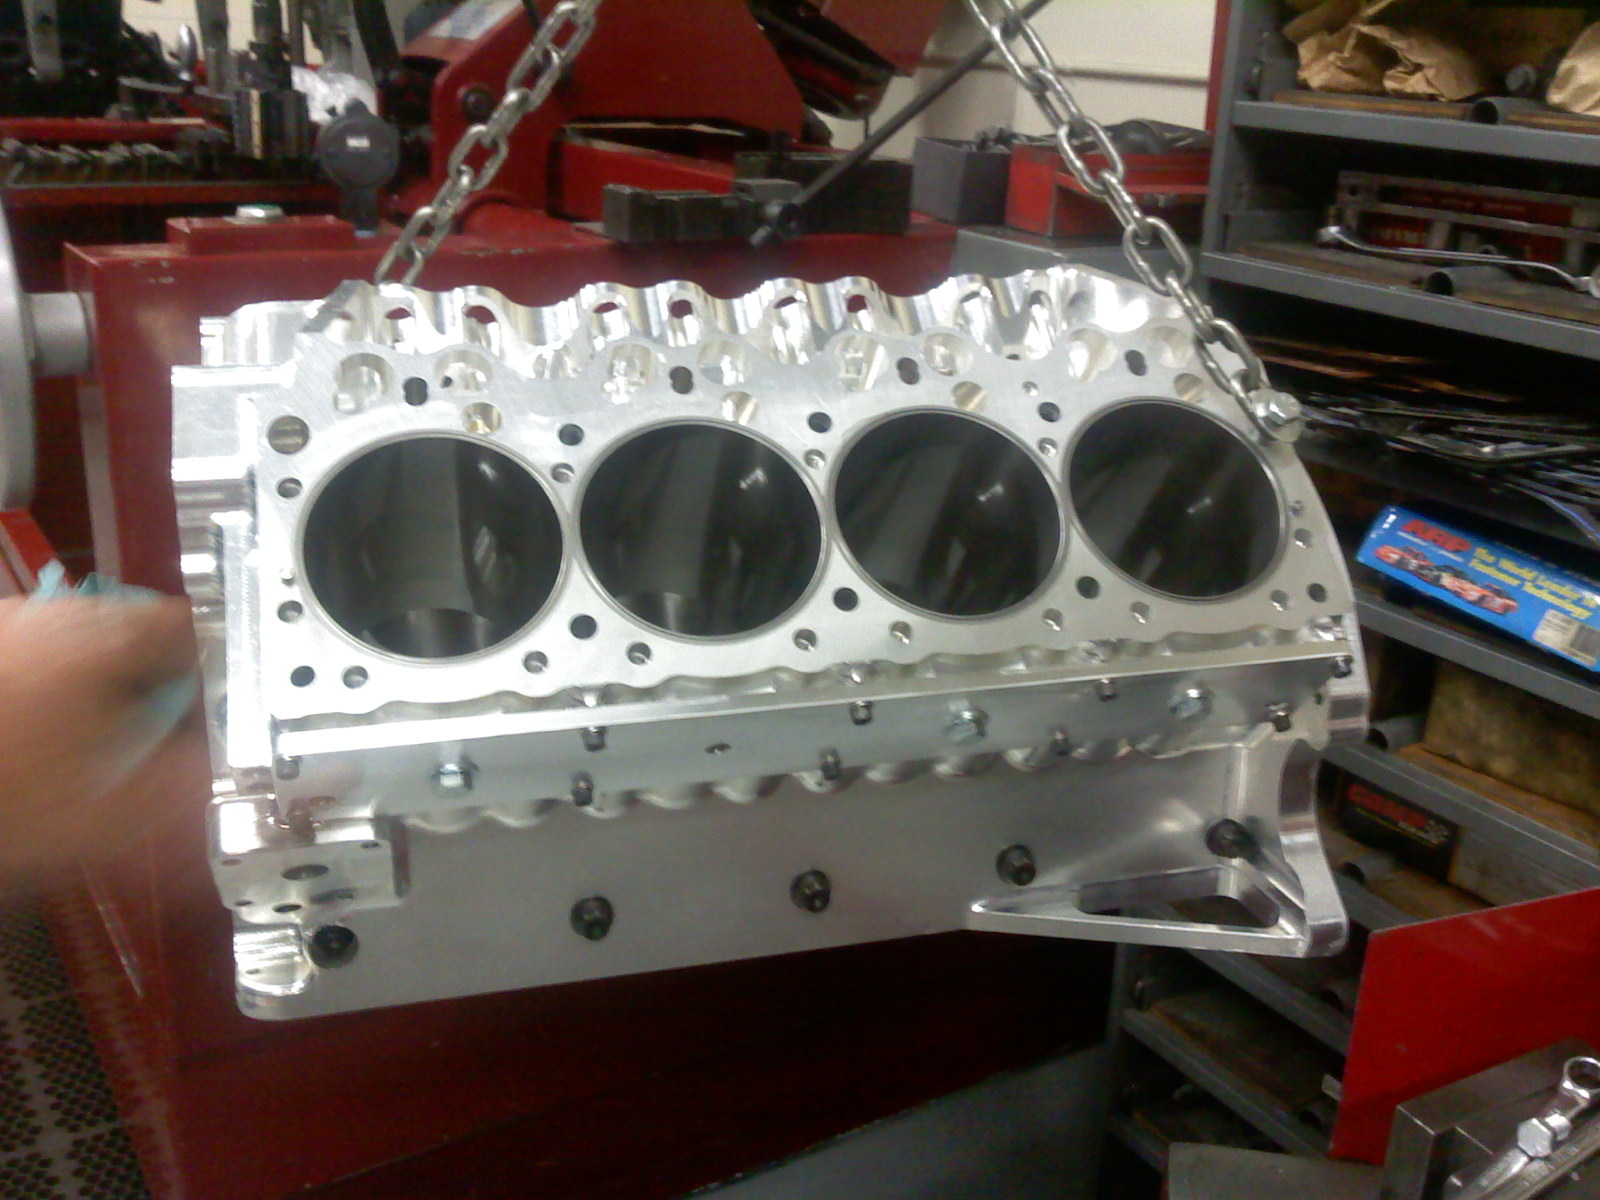 572 Hemi Engine Diagram Billet Block Water Cooling Unlawfls Race 1600x1200